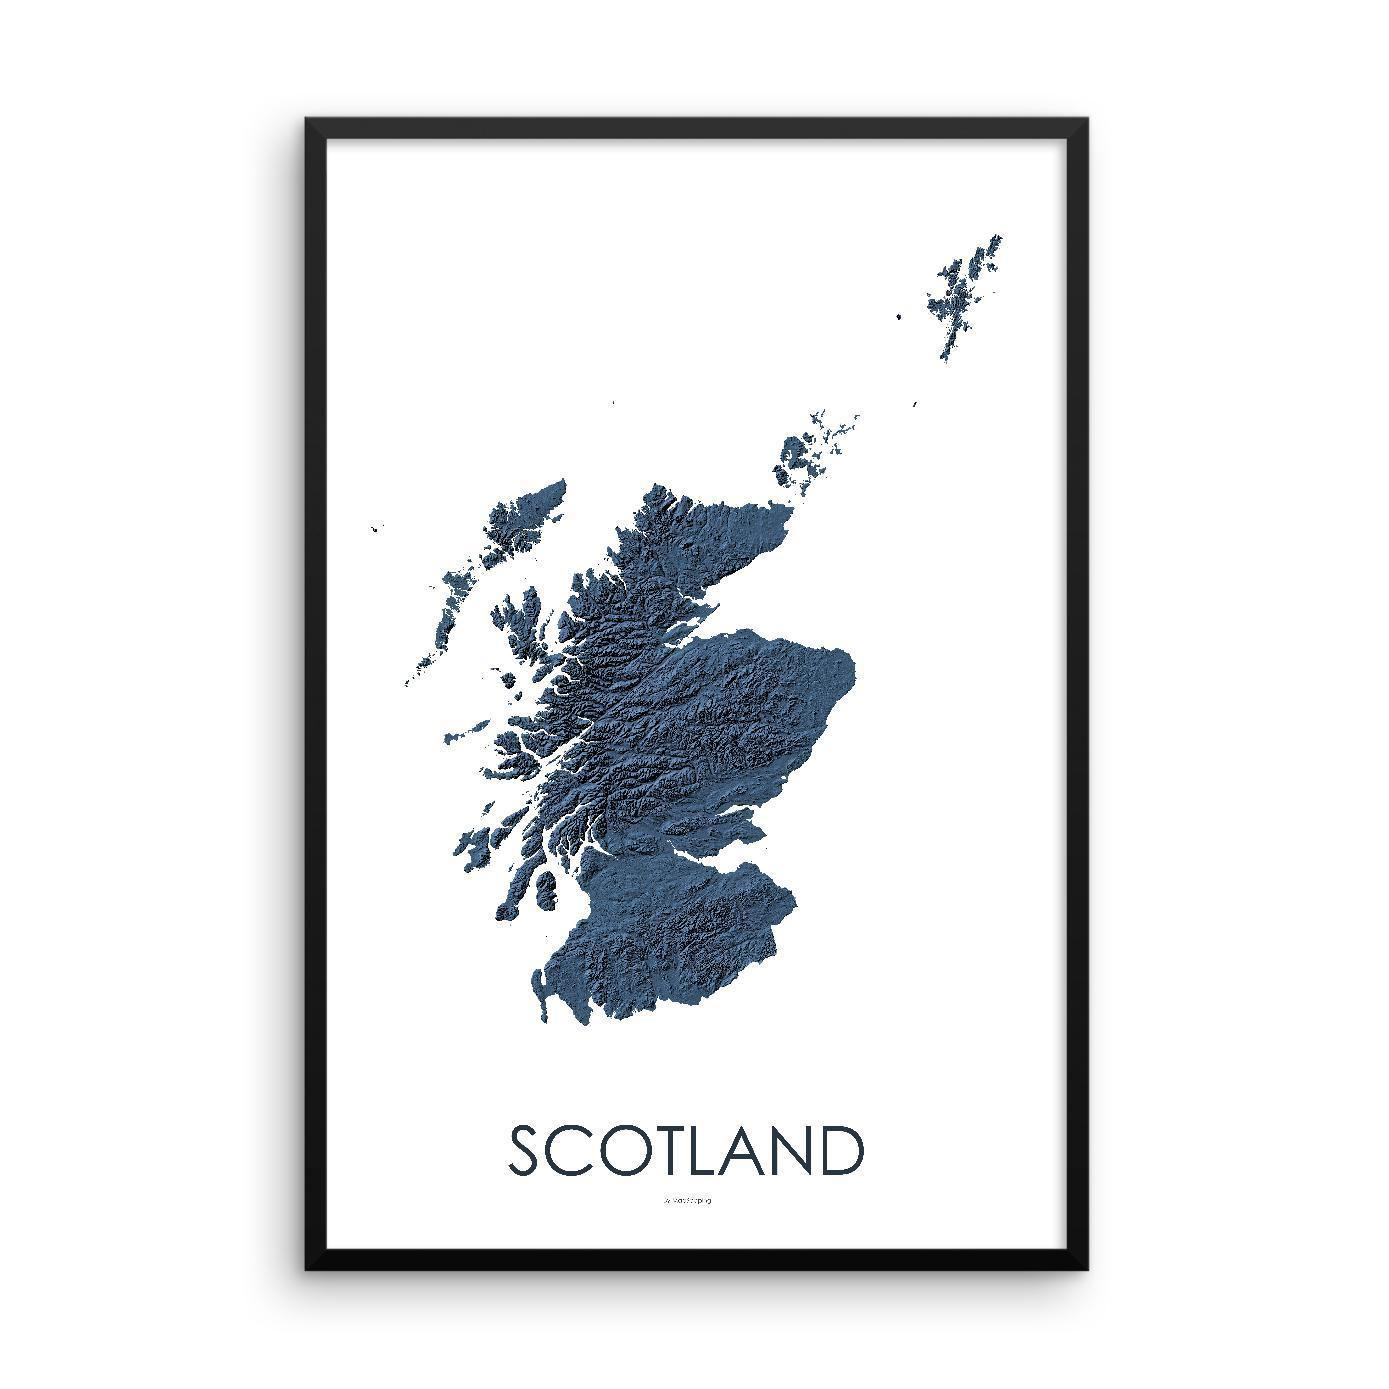 Scotland Poster 3D Midnight Blue-topographic wall art map by MapScaping